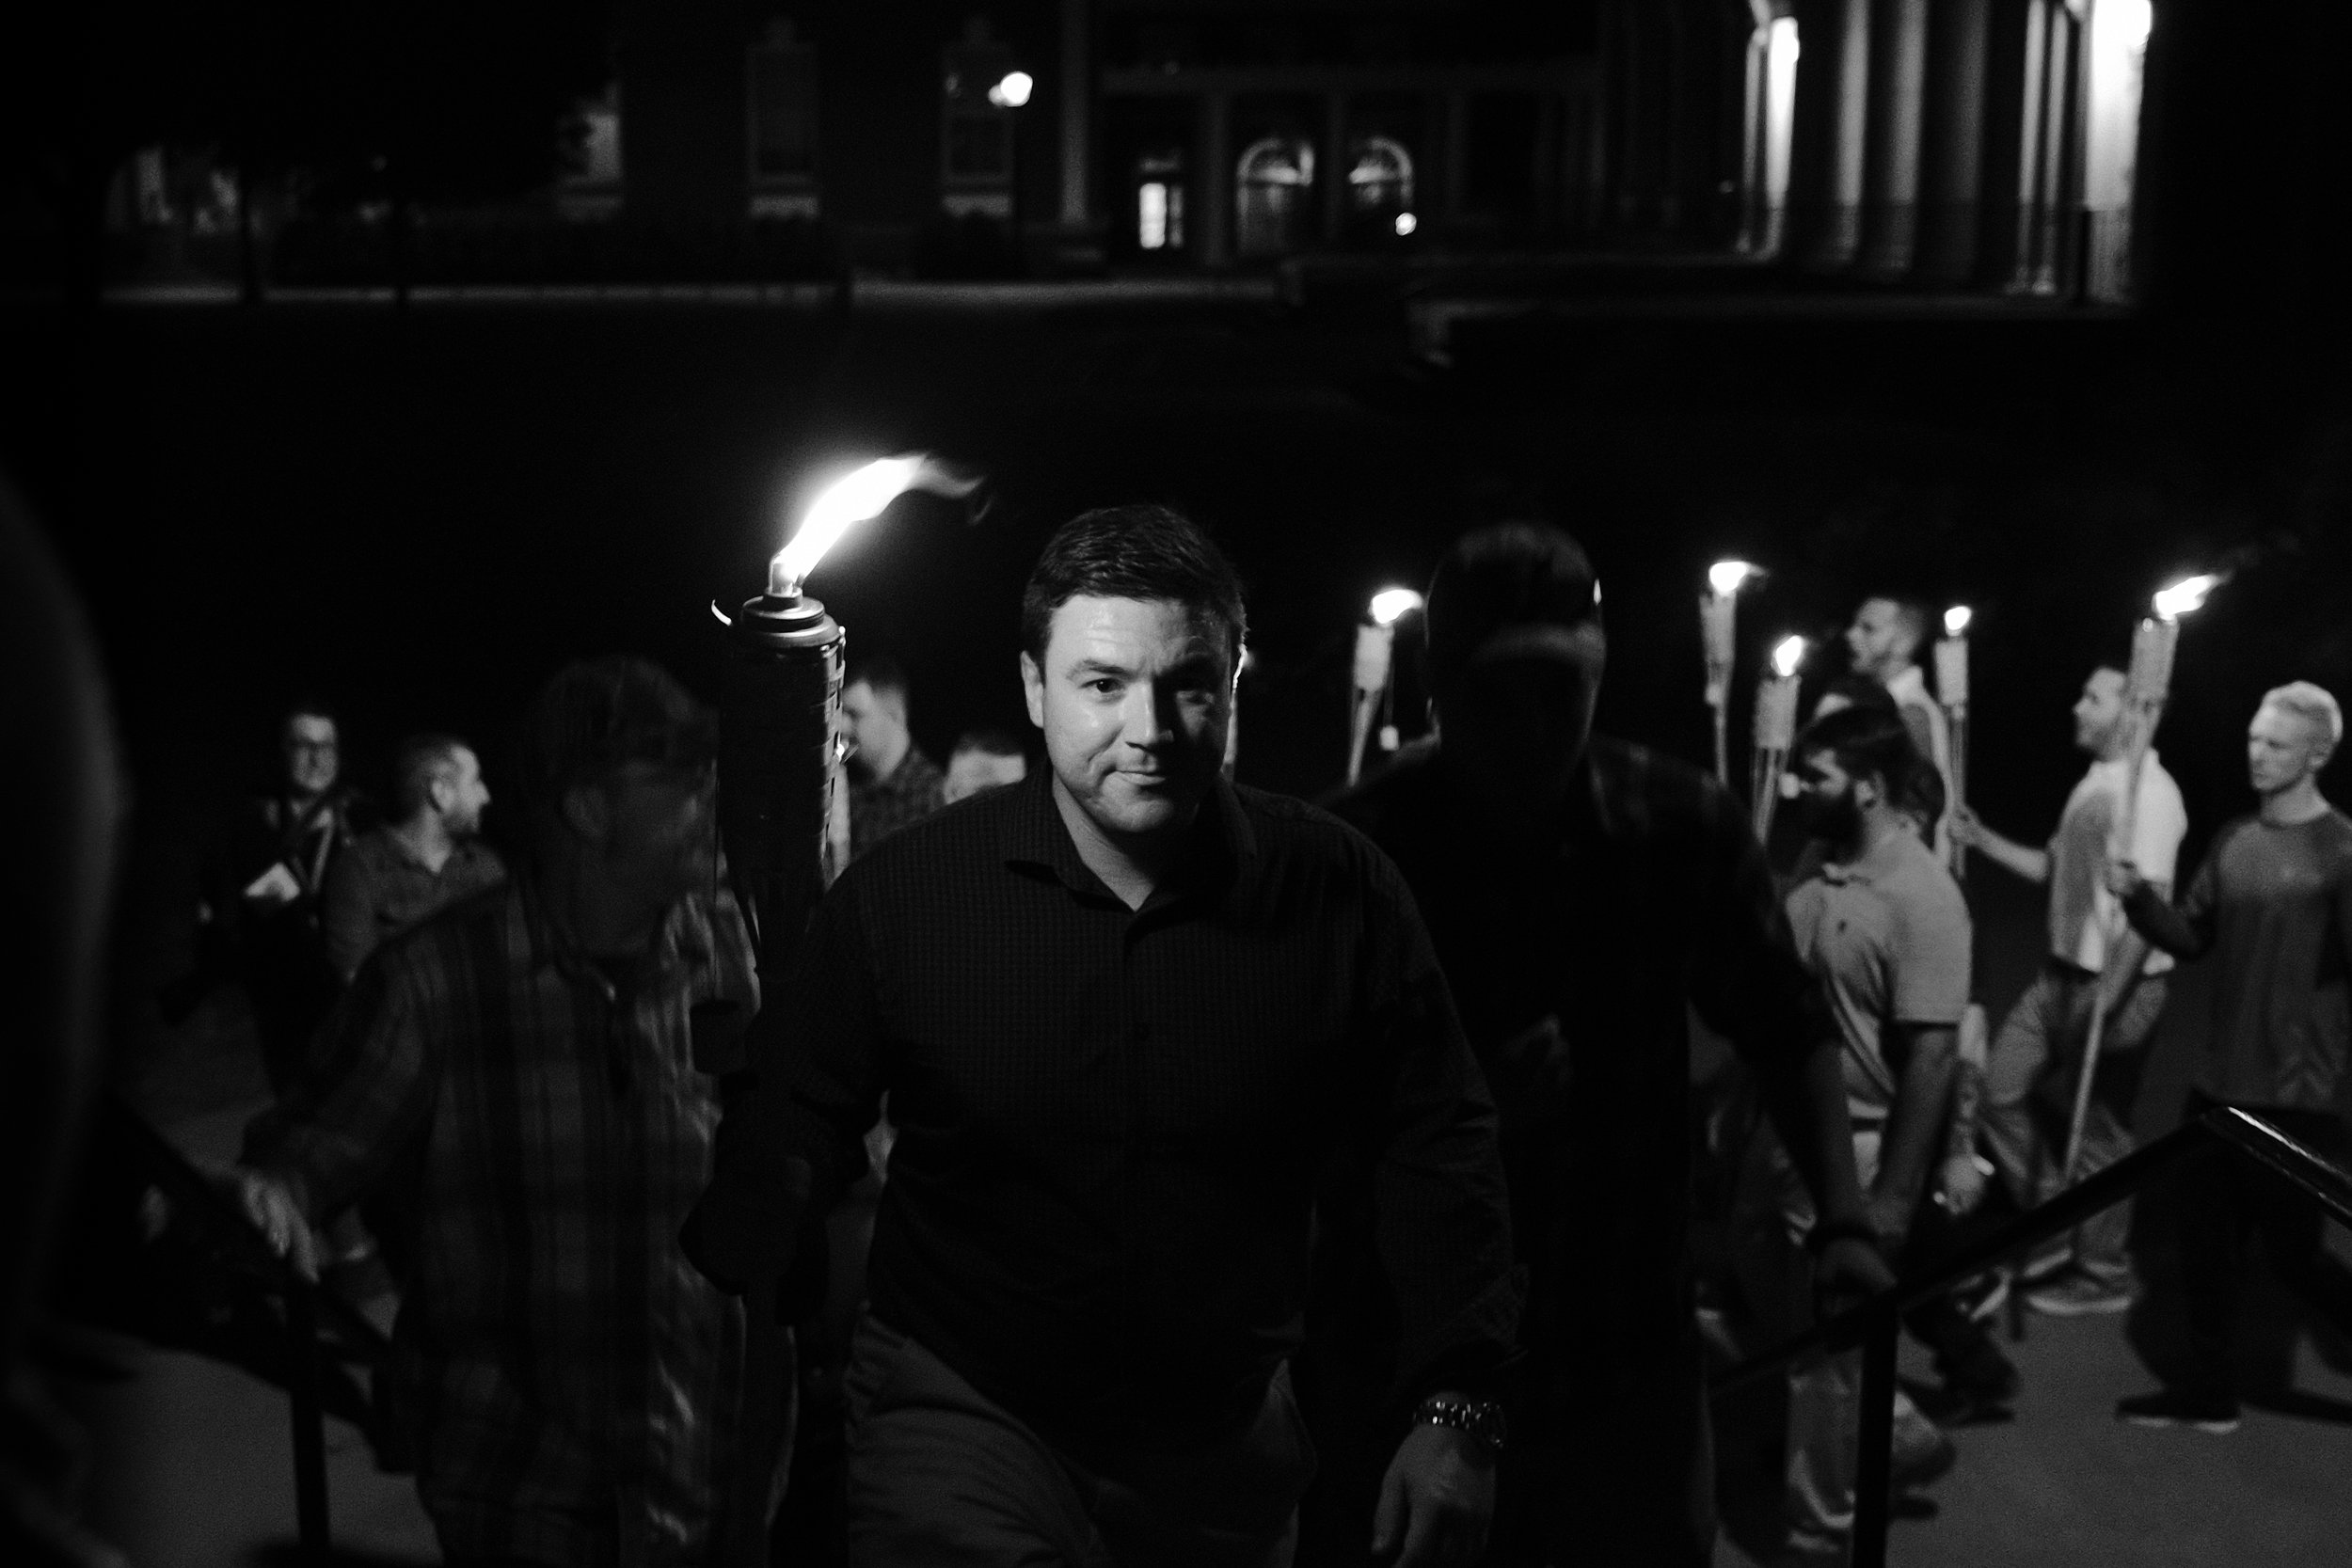 Jason Kessler (above) led the congregation as they moved haphazardly through the UVA campus. He was surrounded by a security detail and a handful of notable white supremacist celebrities including Richard Spencer, Evan McLaren, and Christopher Cantwell.